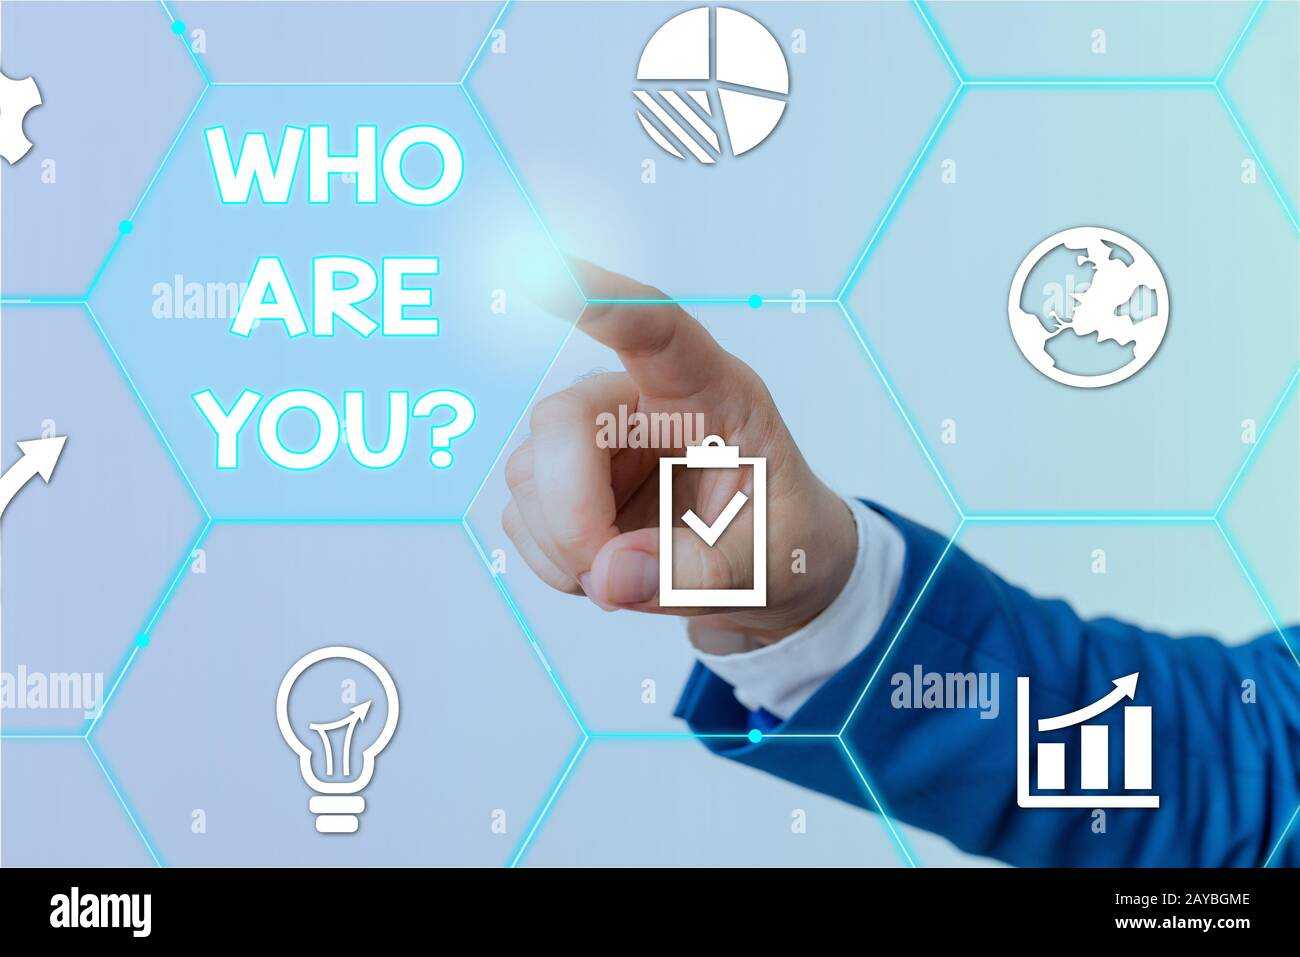 Text sign showing Who Are You question. Conceptual photo asking demonstrating identity or demonstratingal information. Stock Photo